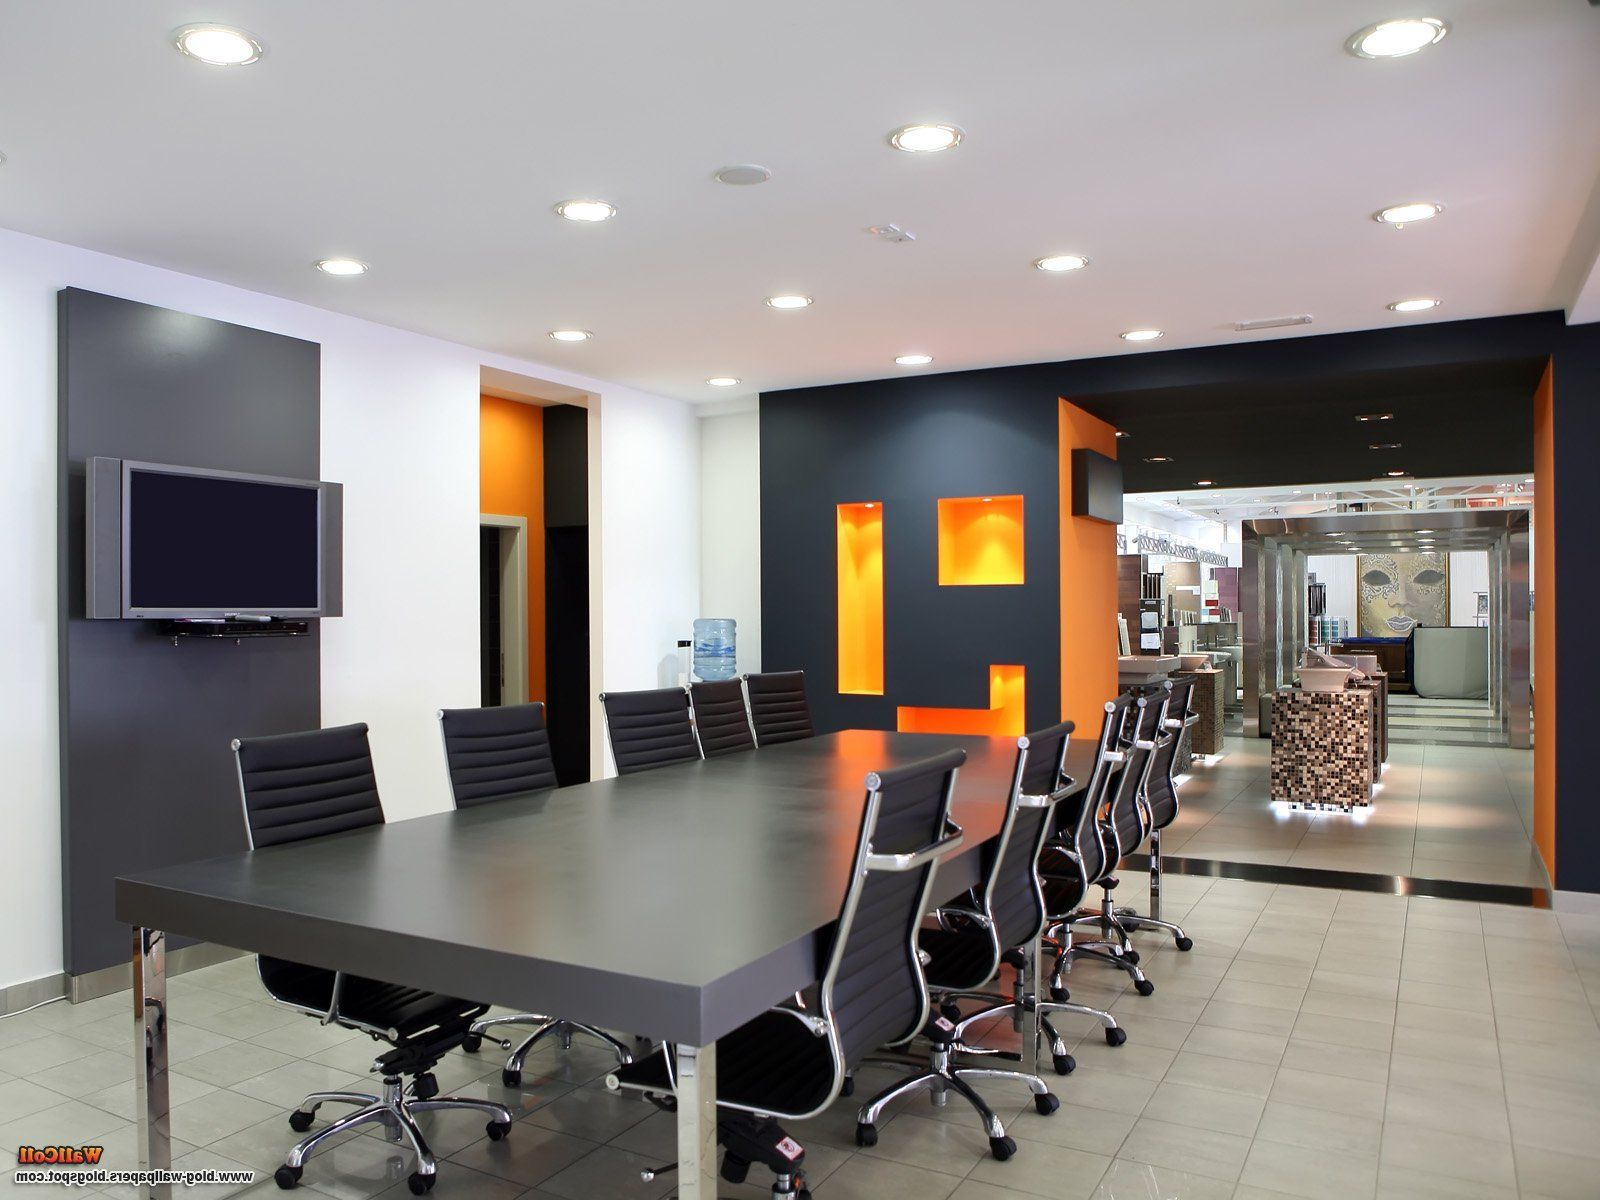 Modern Meeting Room Design And Decoration Decorcraze Com Office Interior Design Home Office Design Office Paint Colors Modern conference room colors